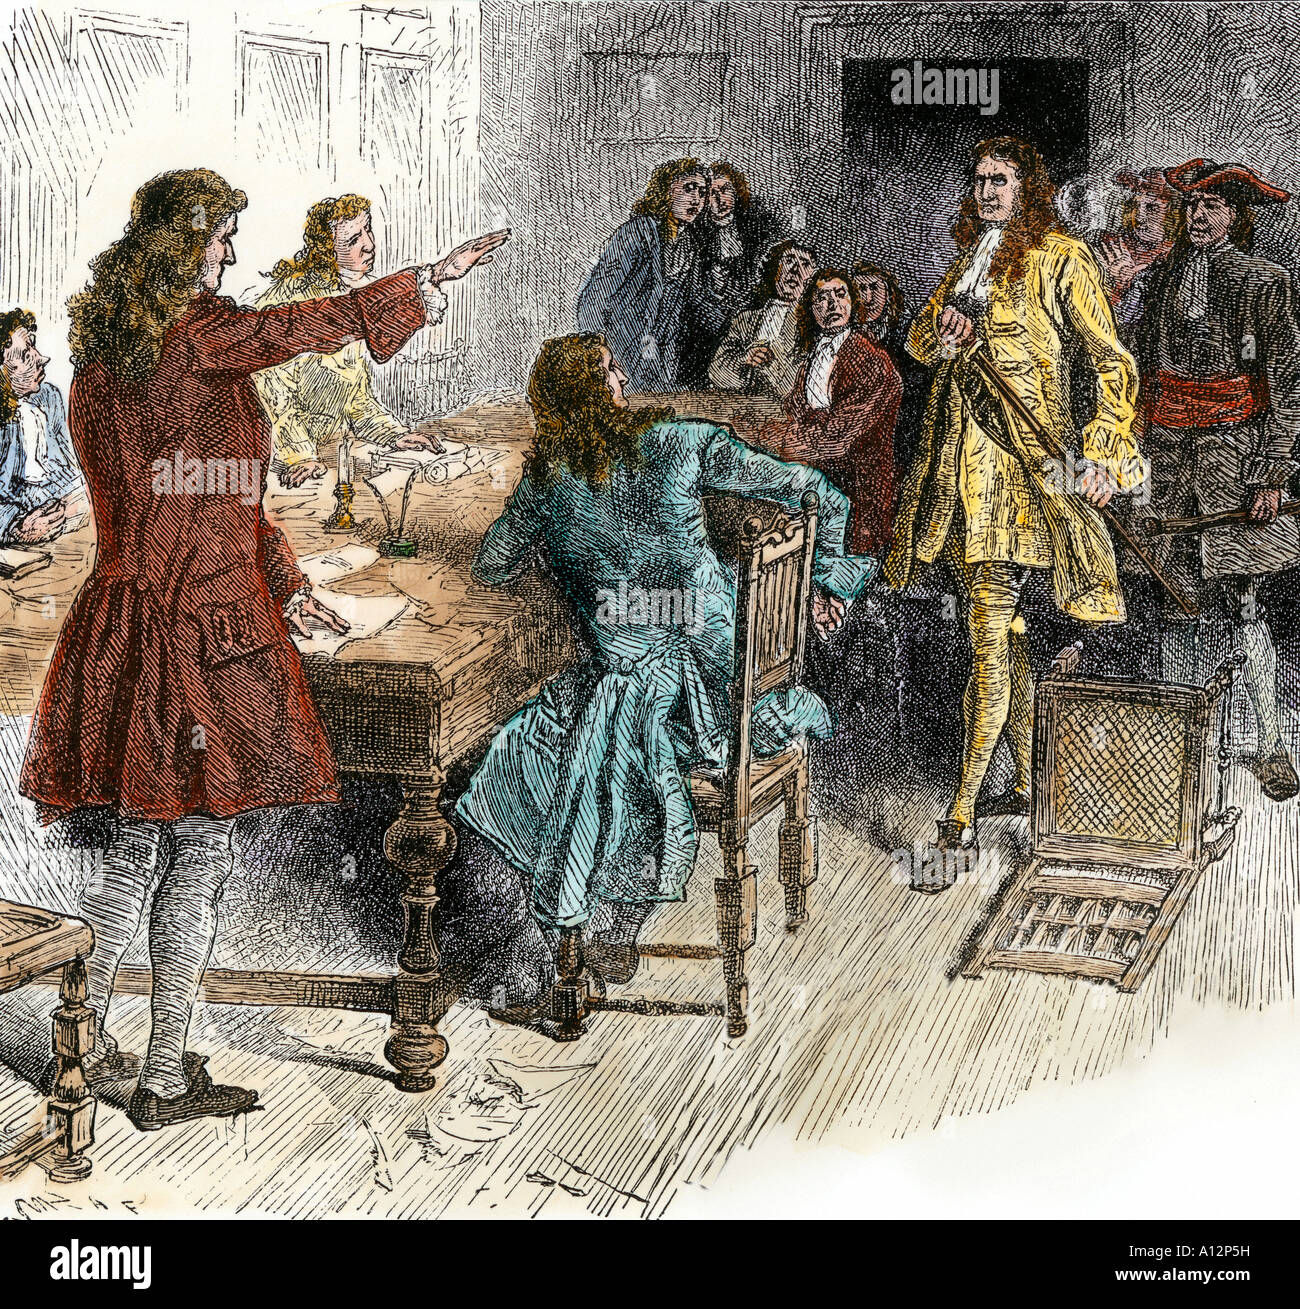 Surrender of Captain Kidd to authorities in New England for piracy 1699. Hand-colored woodcut - Stock Image